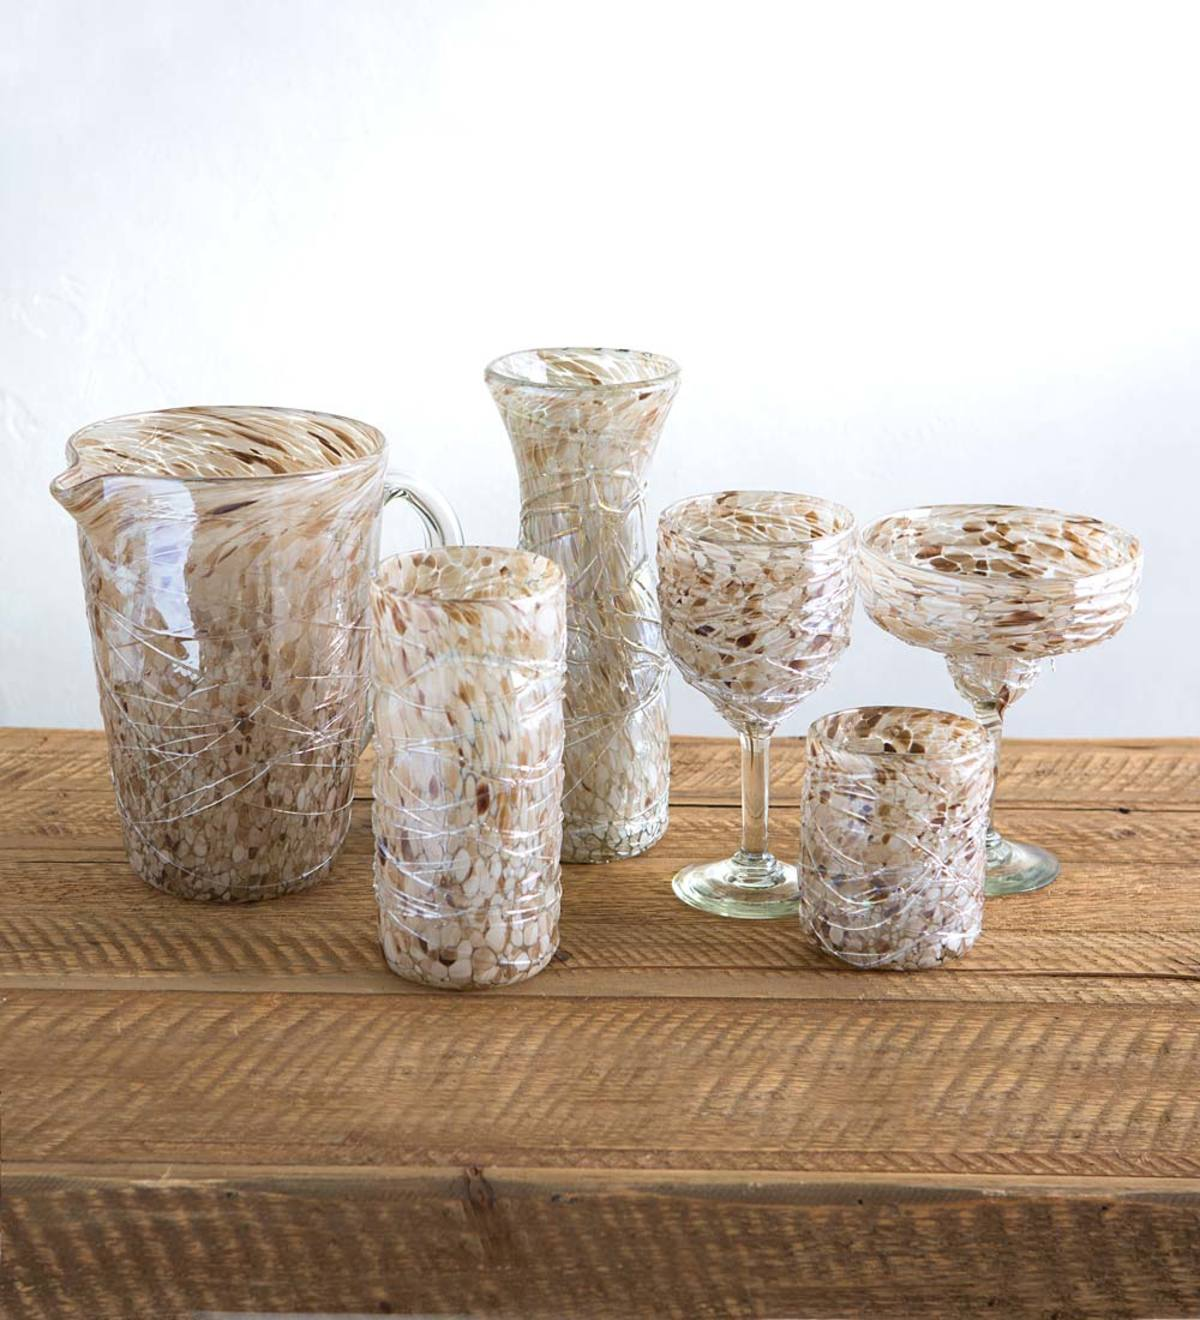 Shimmer Swirled Recycled Glassware Collection